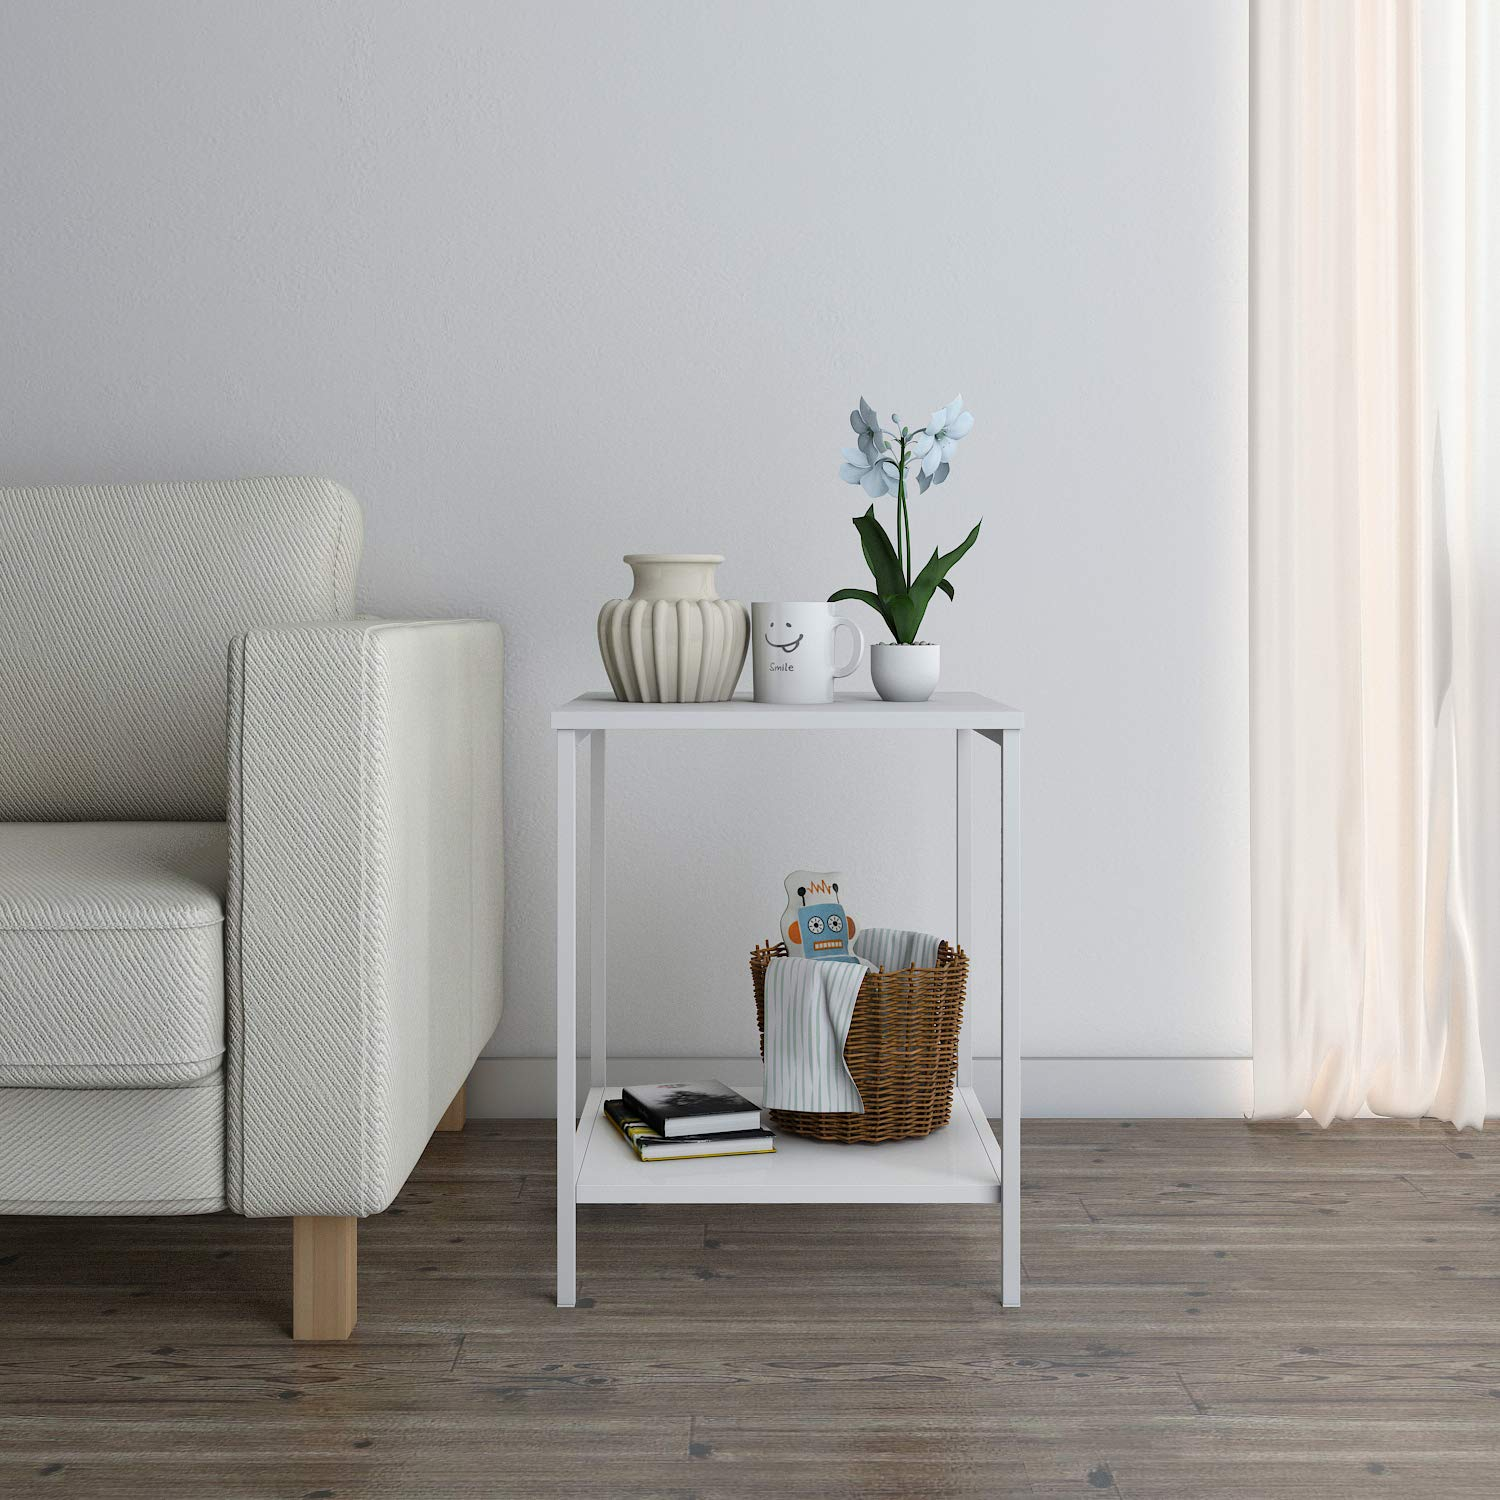 Living Room Modern Side Table Design.Lifewit Small 2 Tier Side Table End Table Beside Sofa Sturdy And Easy Assembly Accent Table For Bedroom Living Room Modern Design Square White